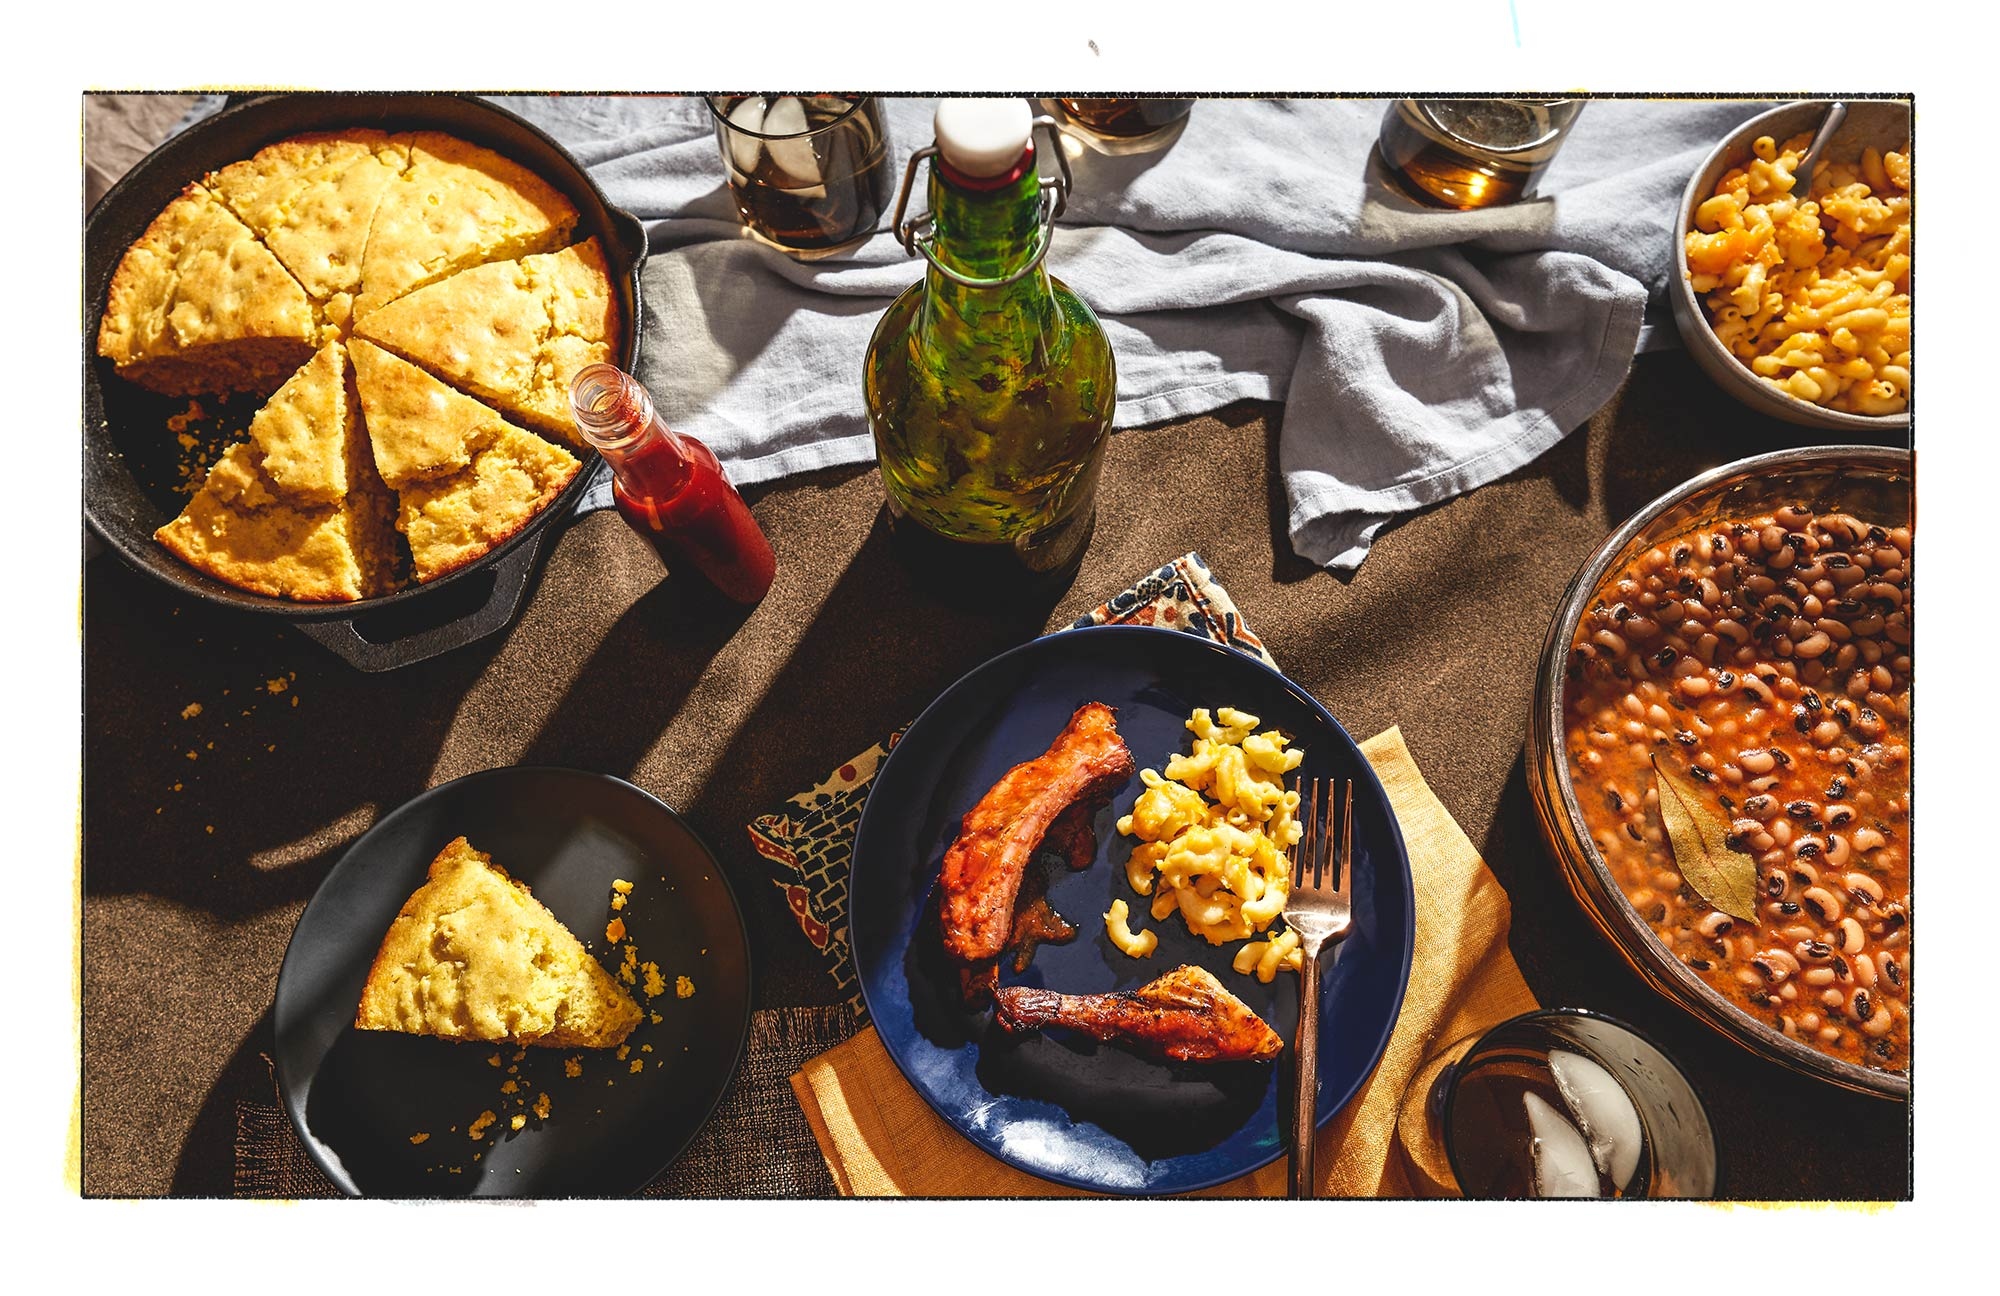 beautiful meal photo: ribs, black-eyed peas, macaroni and cheese and more